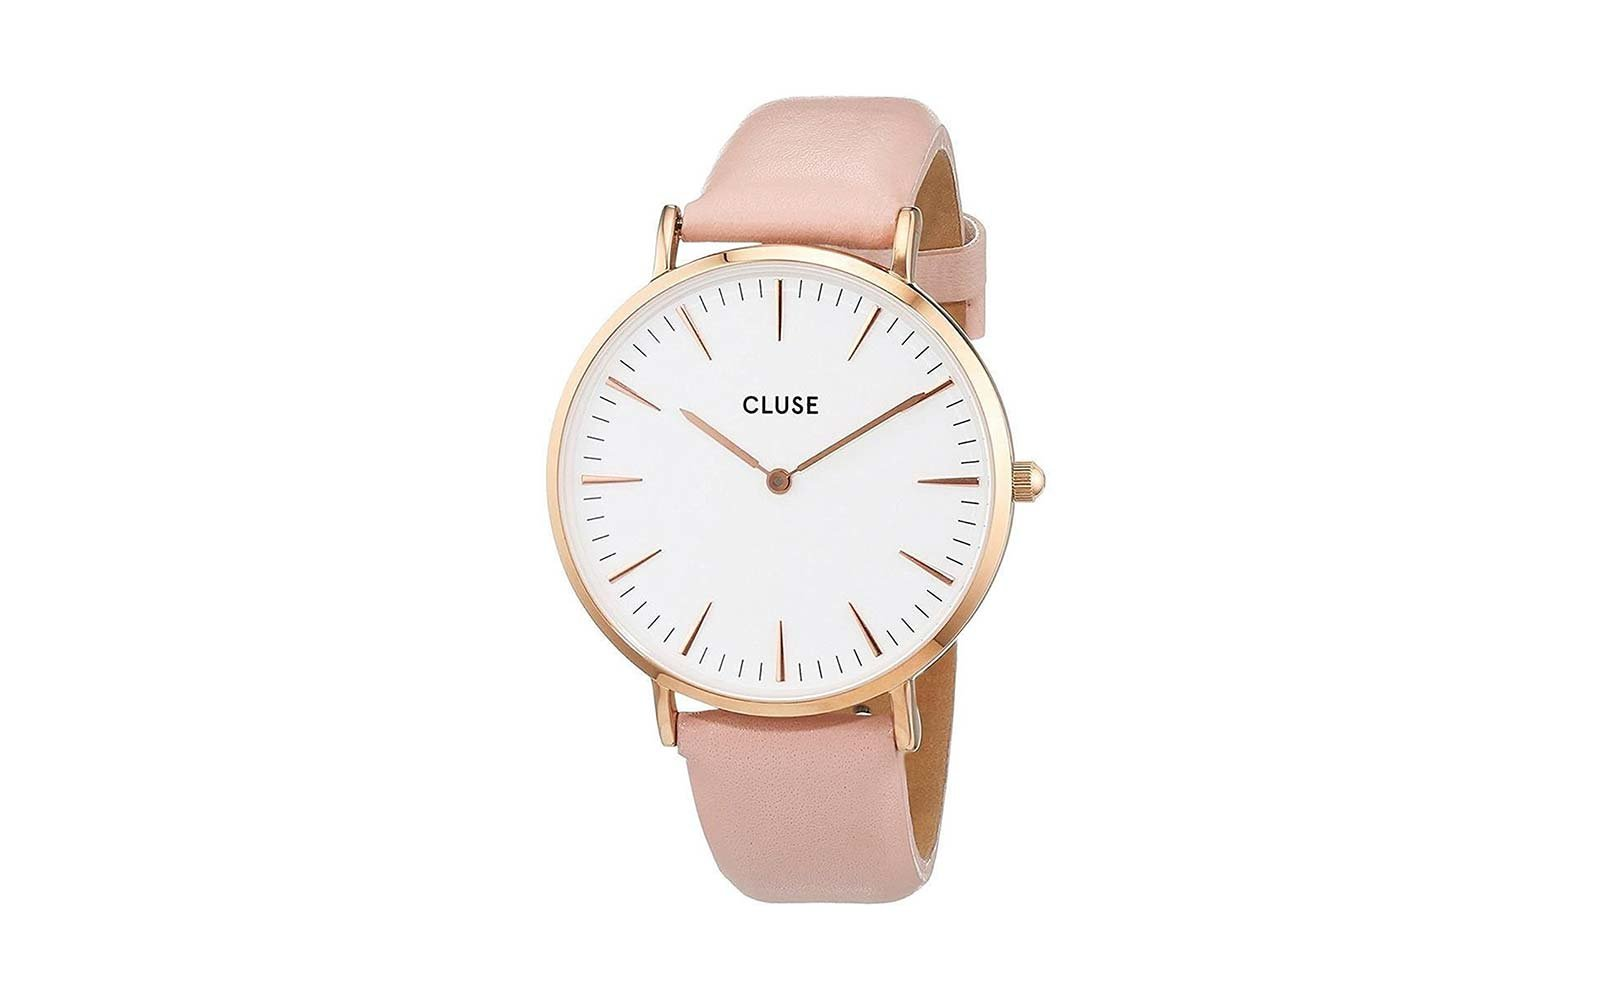 CLUSE La Bohème Round Watch, Leather Band